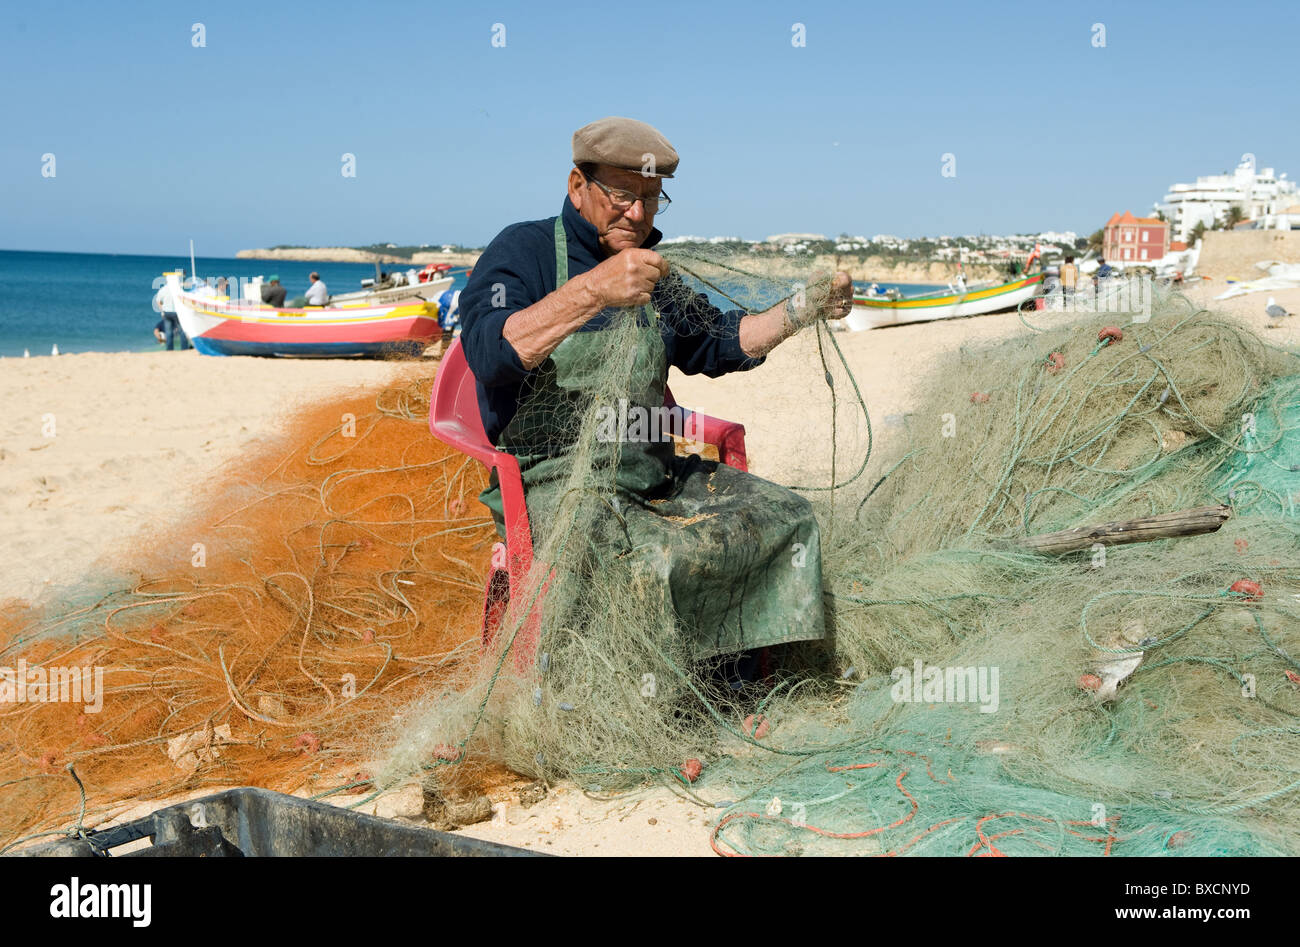 A fisherman on the beach, Armacao de Pera, Portugal - Stock Image